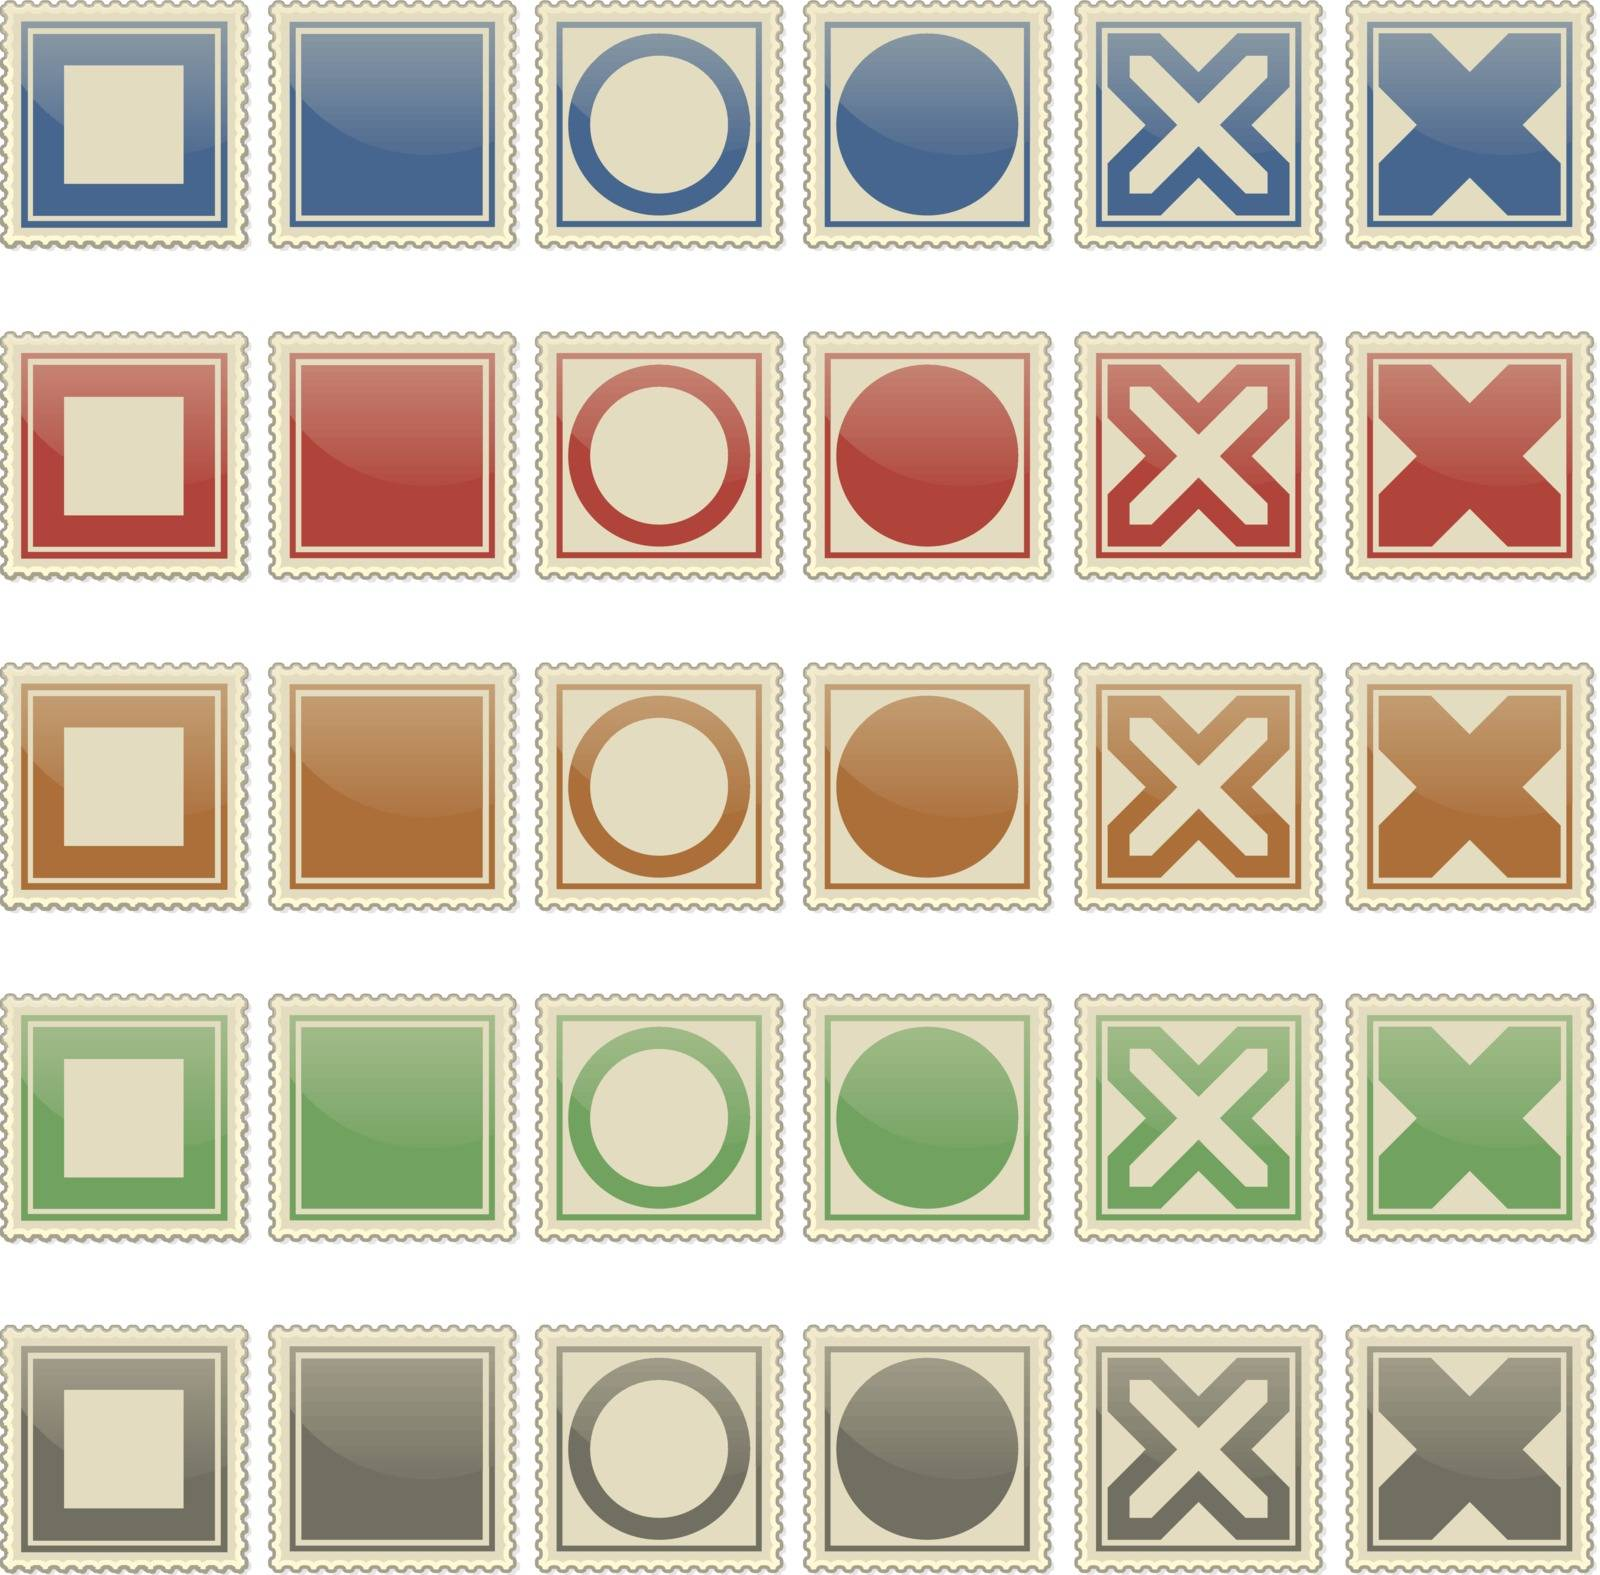 square stamps with different patterns and different colors